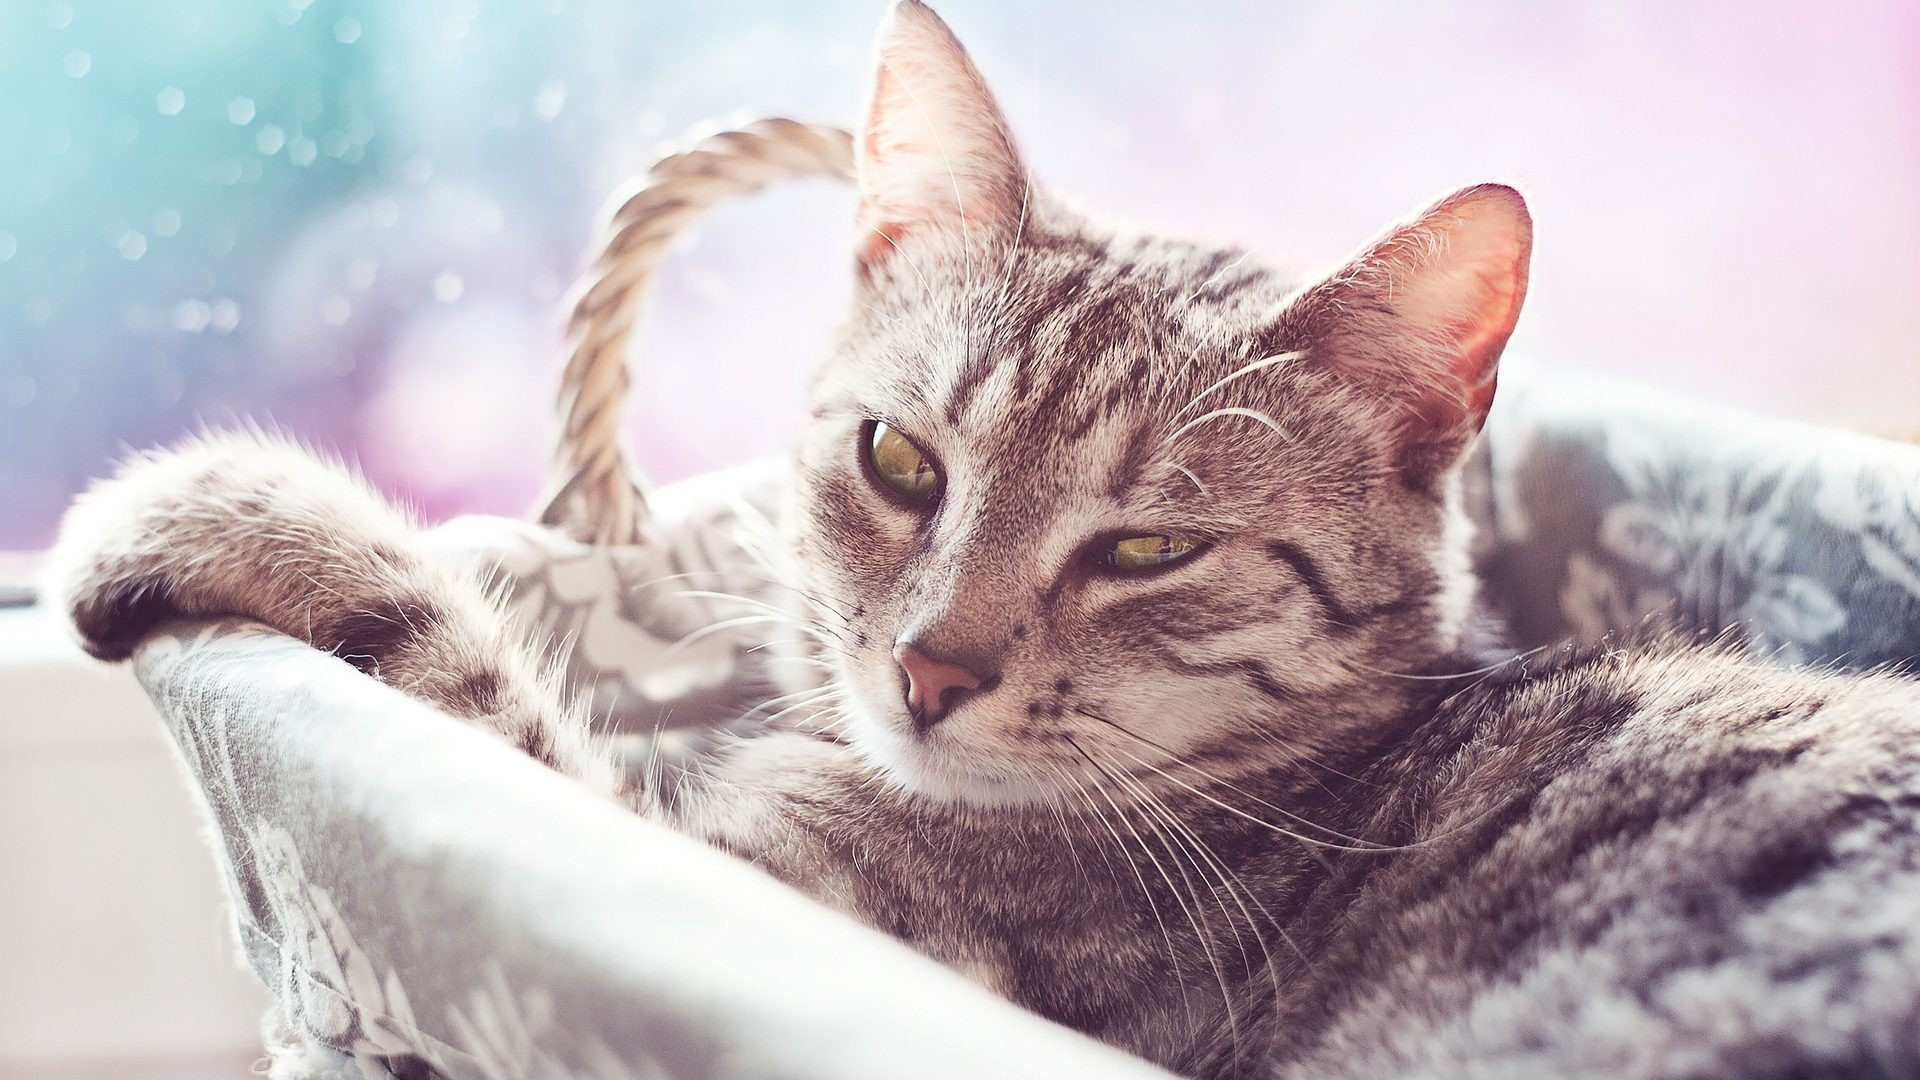 1920x1080 Felines Tag - Animals Cats Cute Felines Desktop Wallpapers for HD 16:9 High  Definition